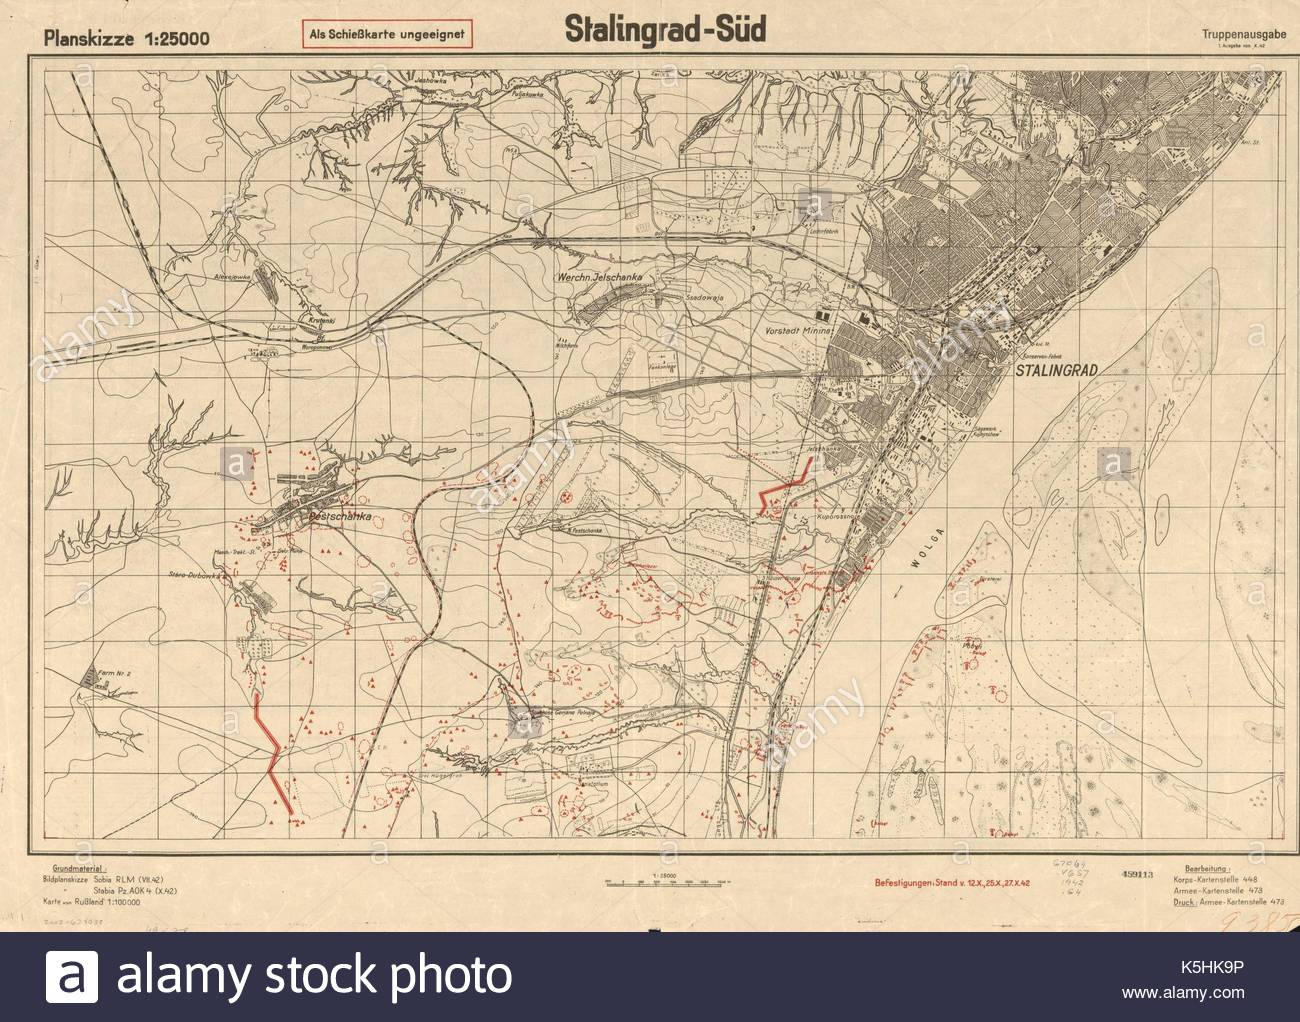 Map Of Battle Of Stalingrad Stock Photos & Map Of Battle Of ...